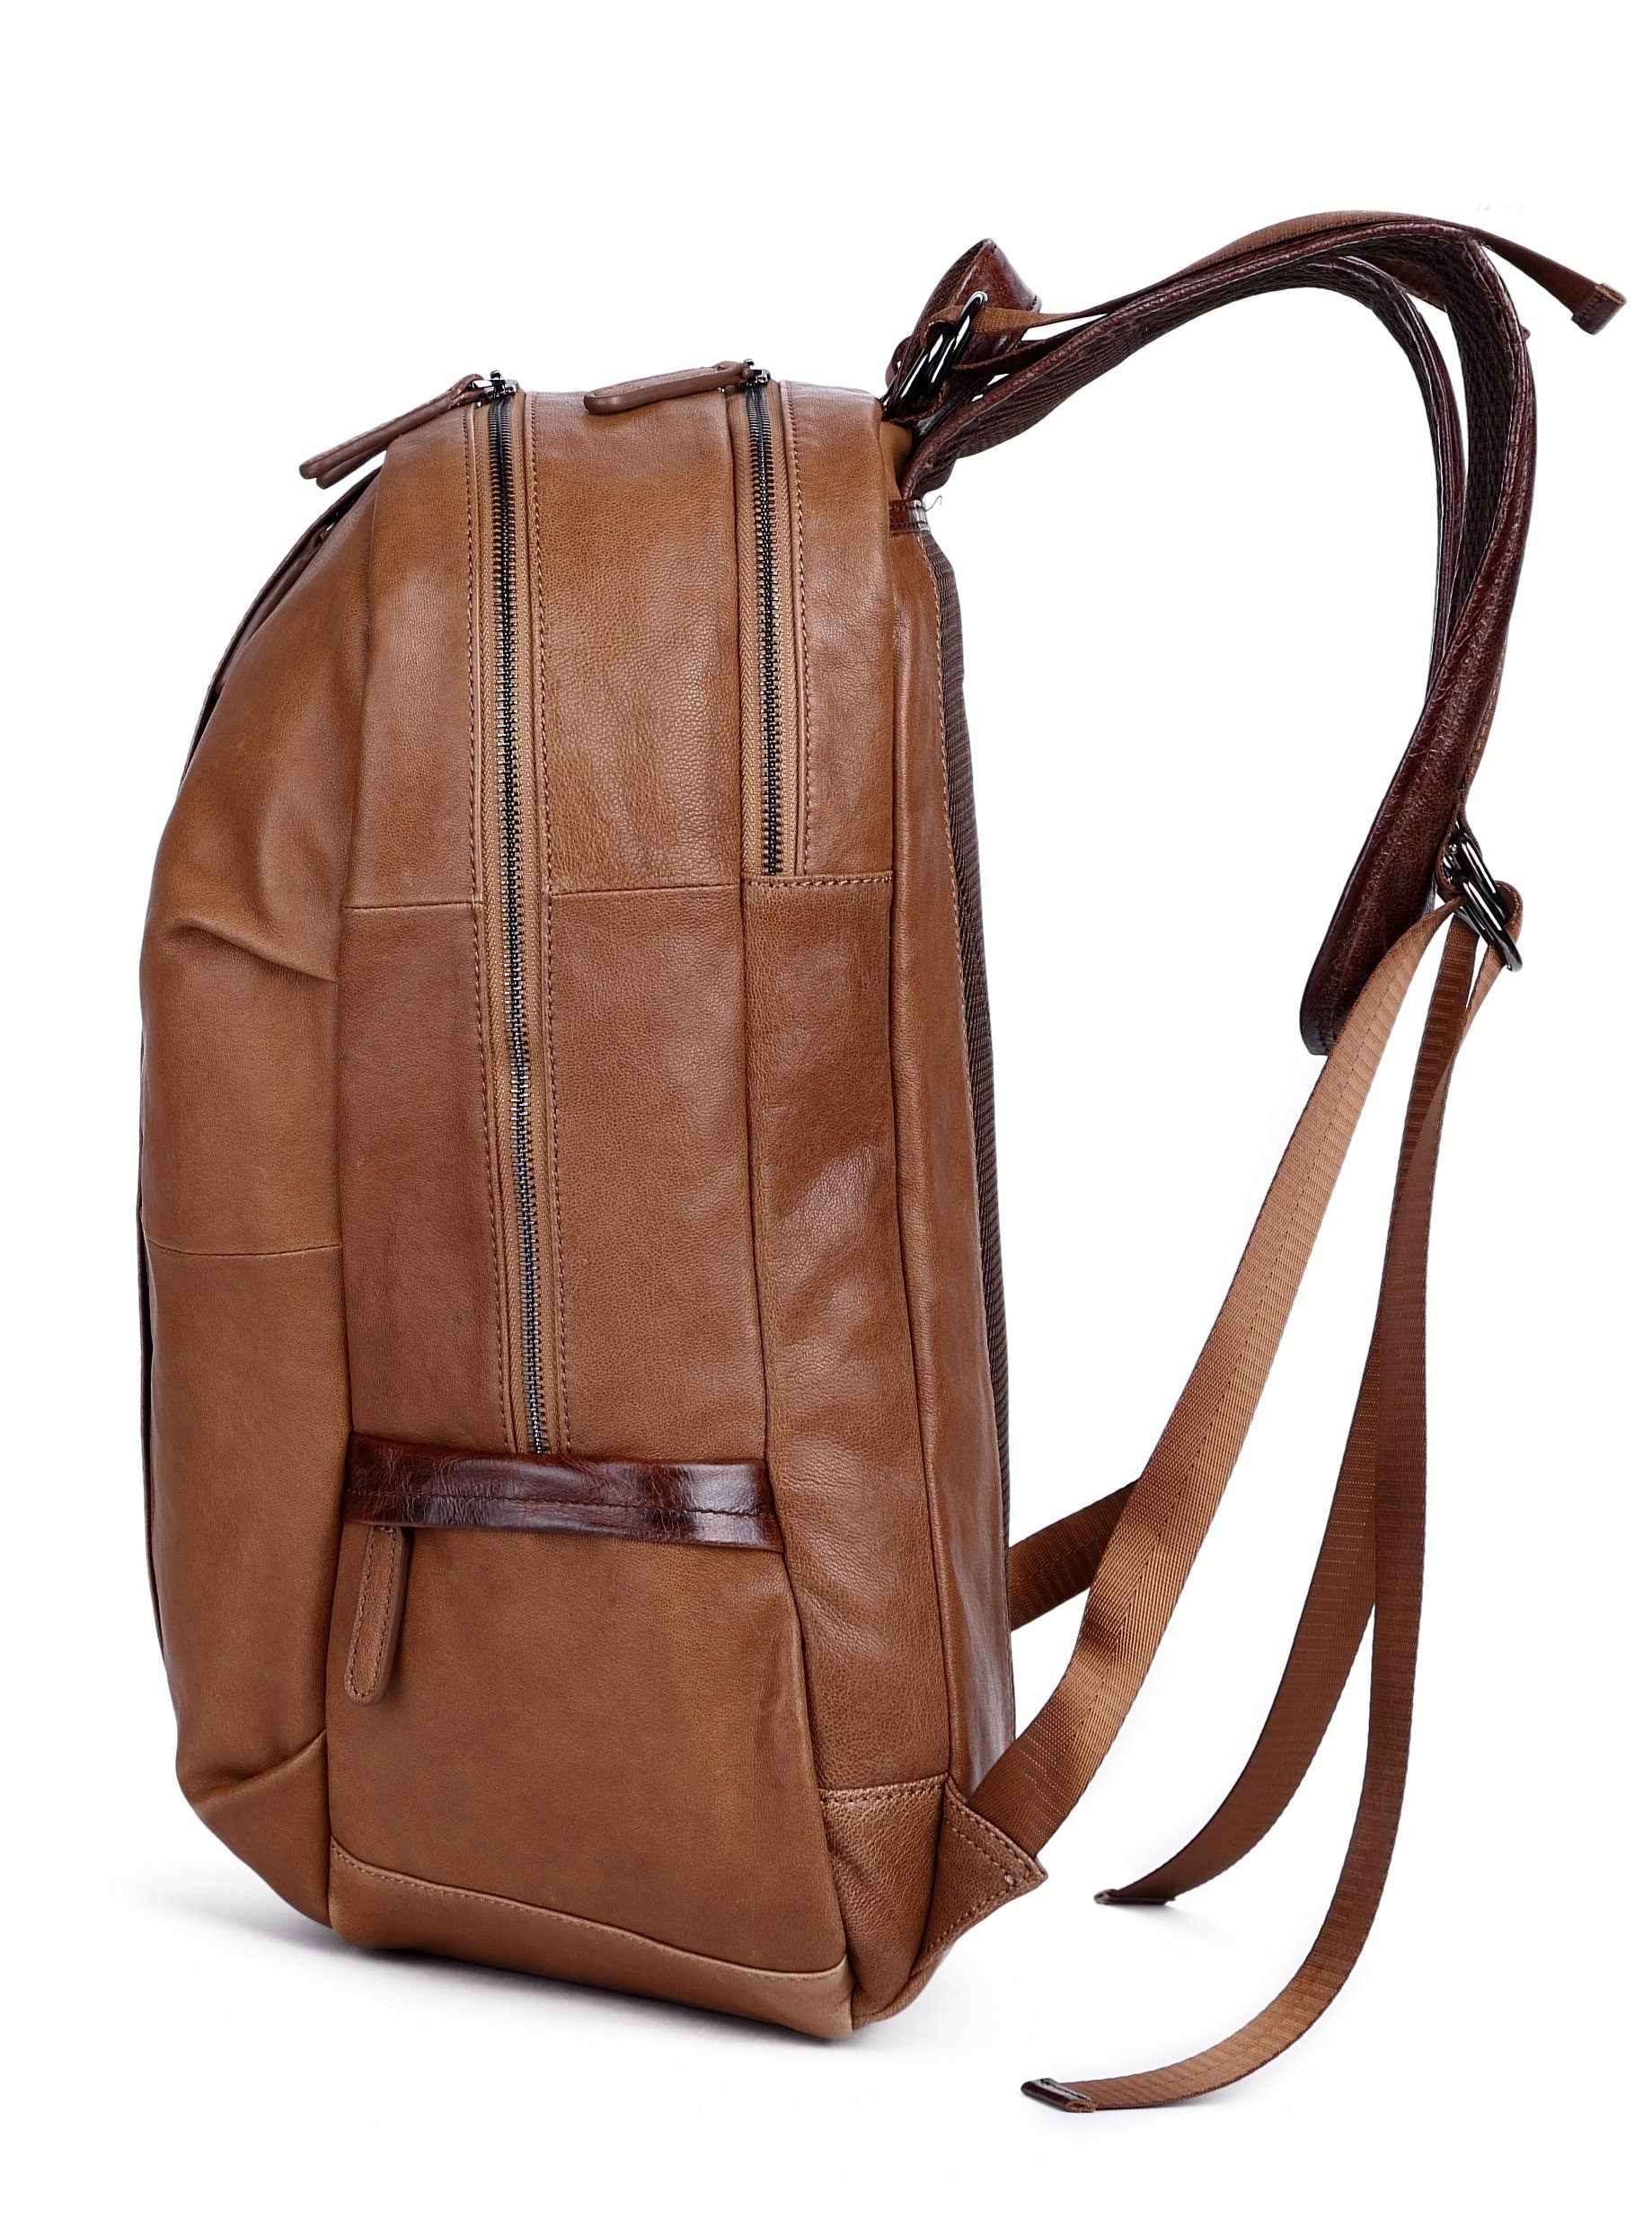 81504003753a 17 Inch Laptop Backpack Leather- Fenix Toulouse Handball